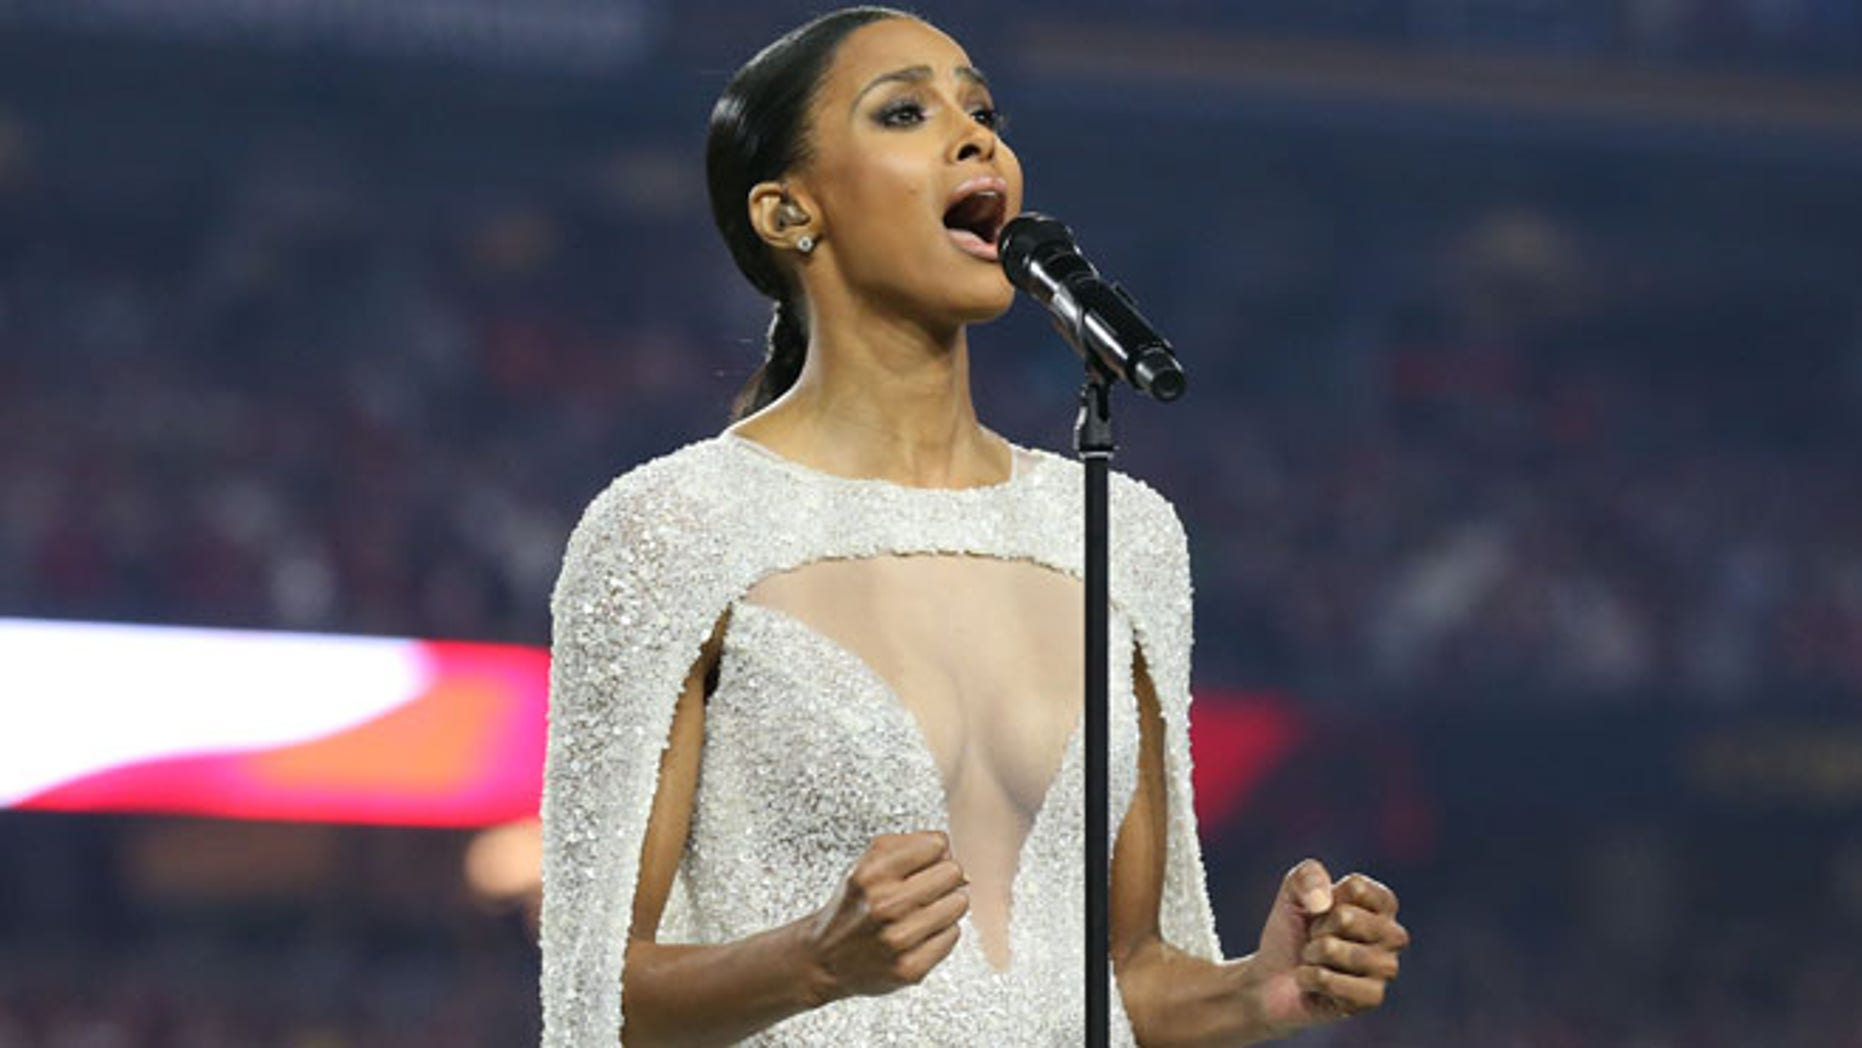 Jan 11, 2016; Glendale, AZ, USA; Recording artist Ciara sign the National Anthem prior to the game between the Alabama Crimson Tide and the Clemson Tigers in the 2016 CFP National Championship at University of Phoenix Stadium. Mandatory Credit: Matthew Emmons-USA TODAY Sports - RTX21XVG